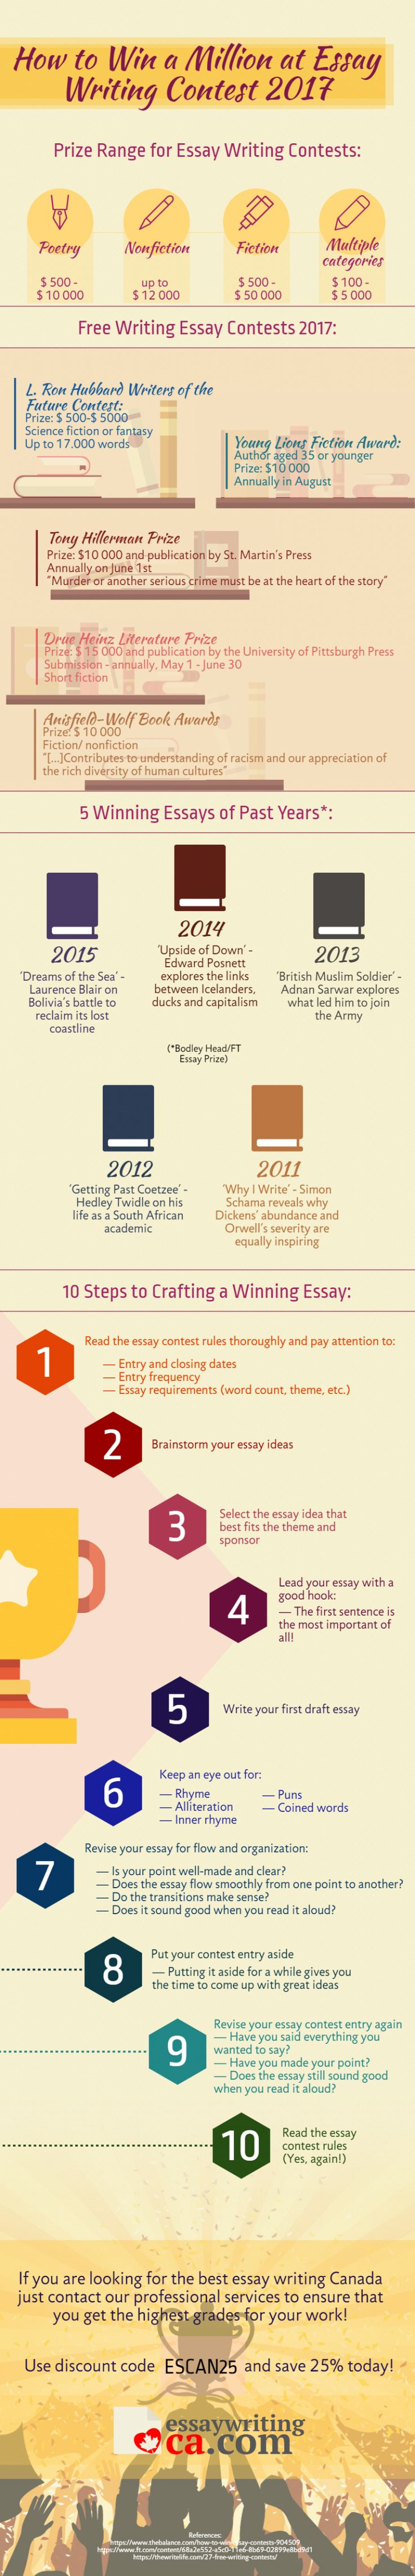 Best ideas about Essay Competition on Pinterest